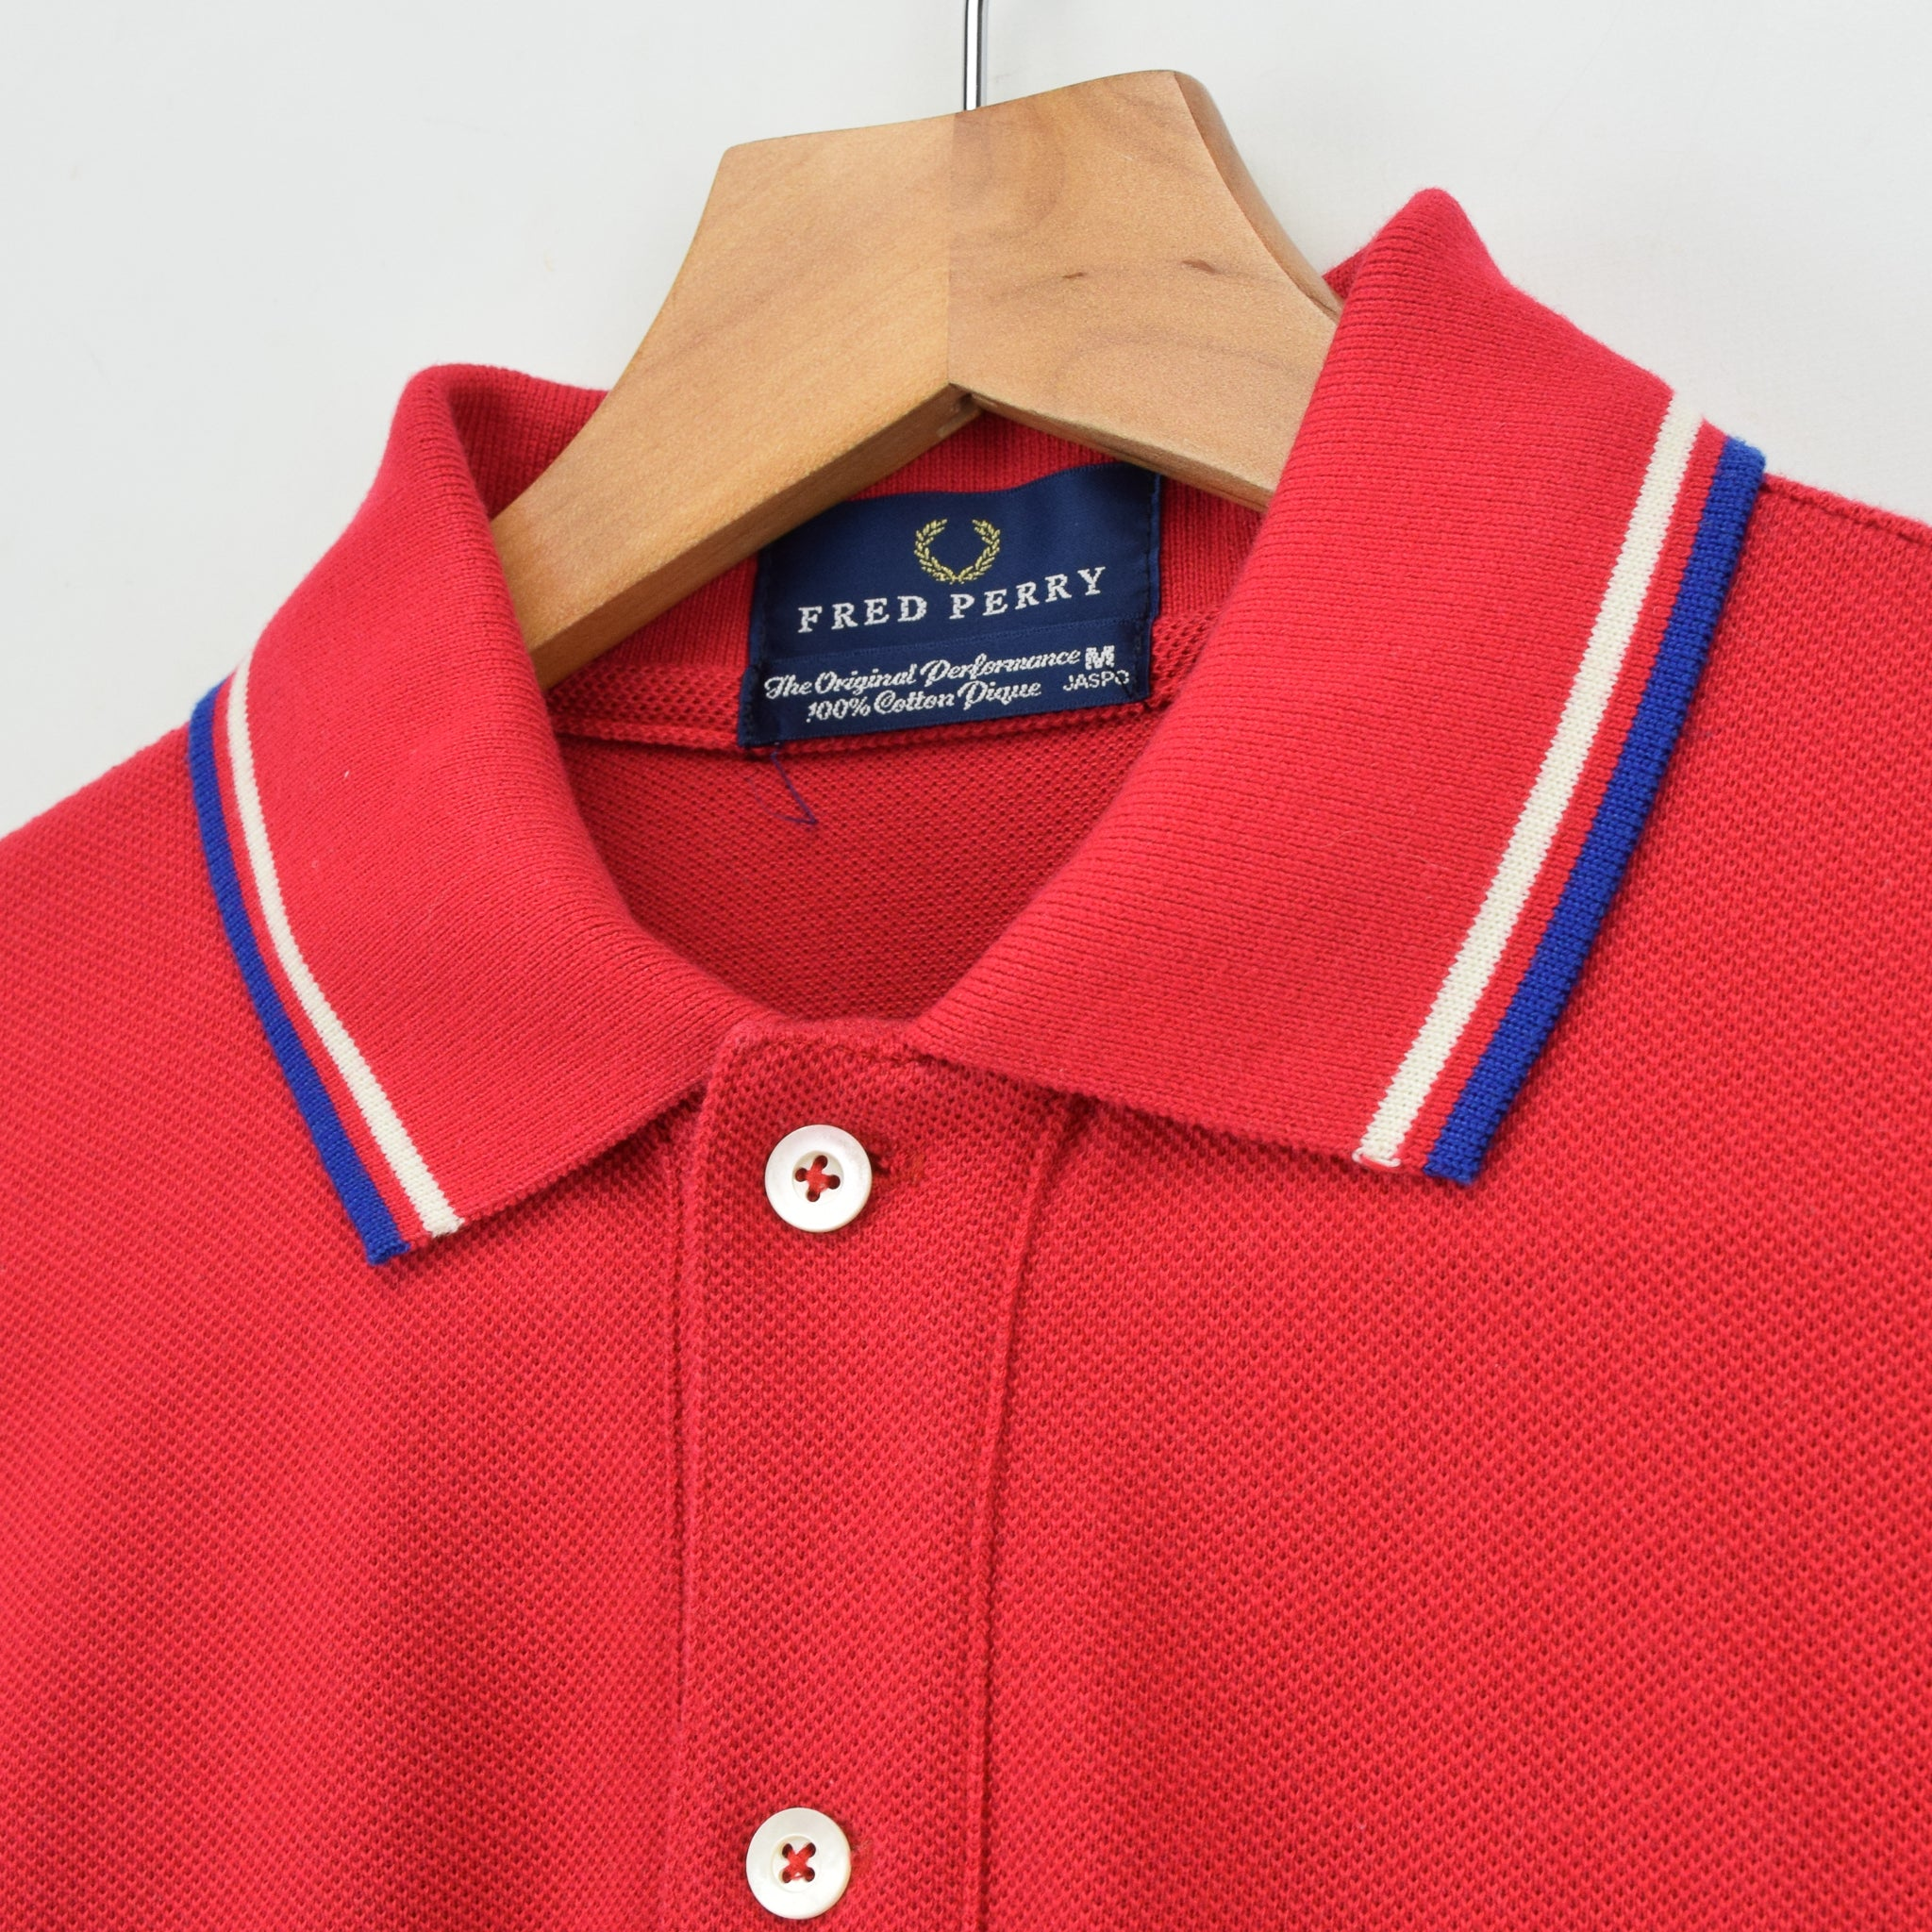 Rare Fred Perry Dark Pink Jaspo Short Sleeved Cotton Pique Polo Shirt M collar